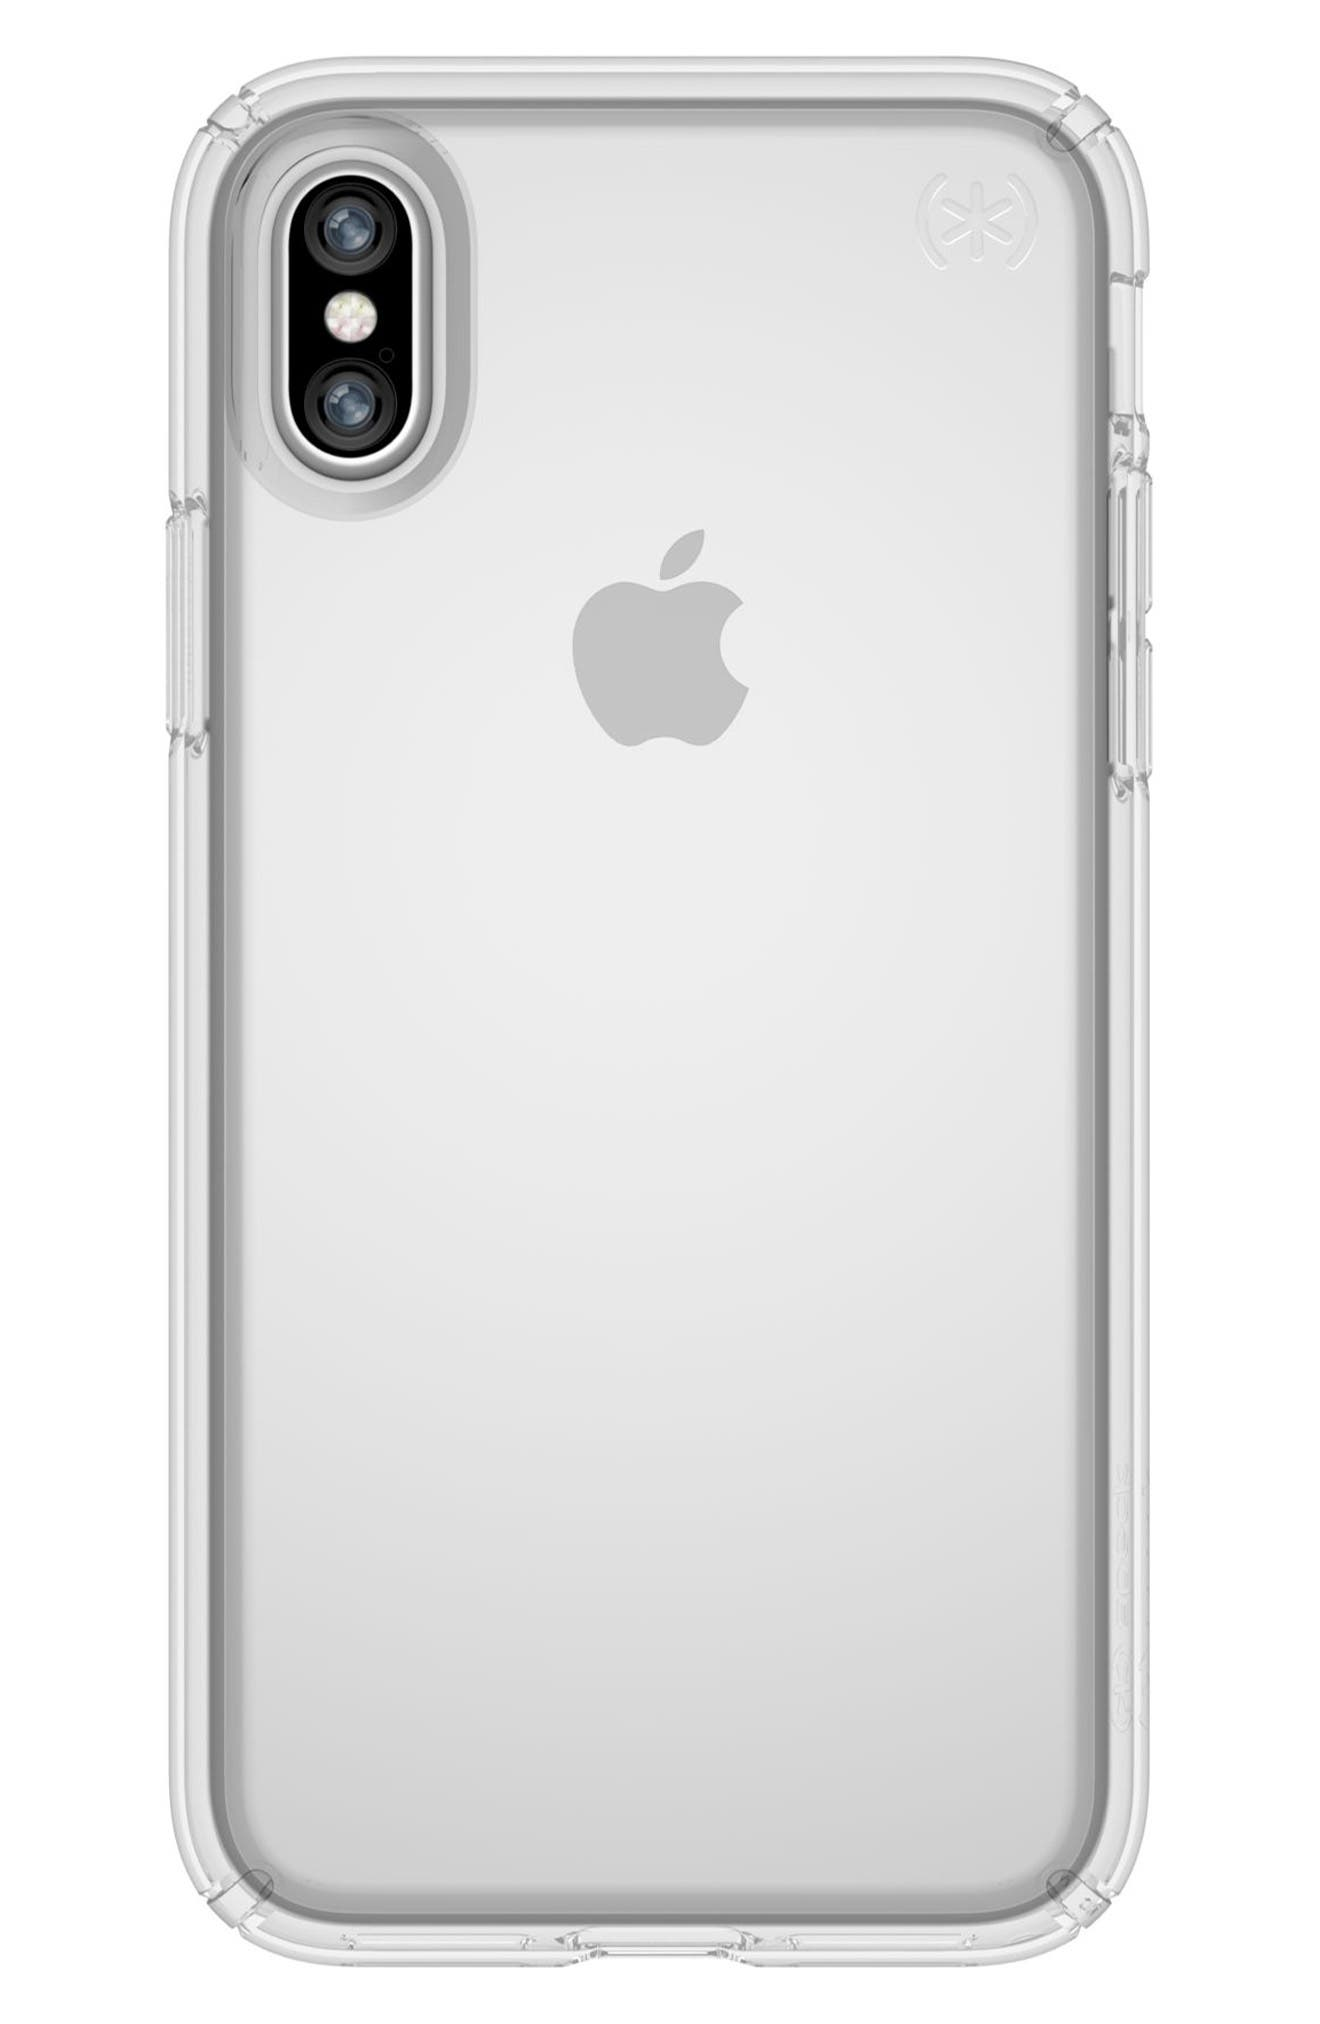 Main Image - Speck Transparent iPhone X Case